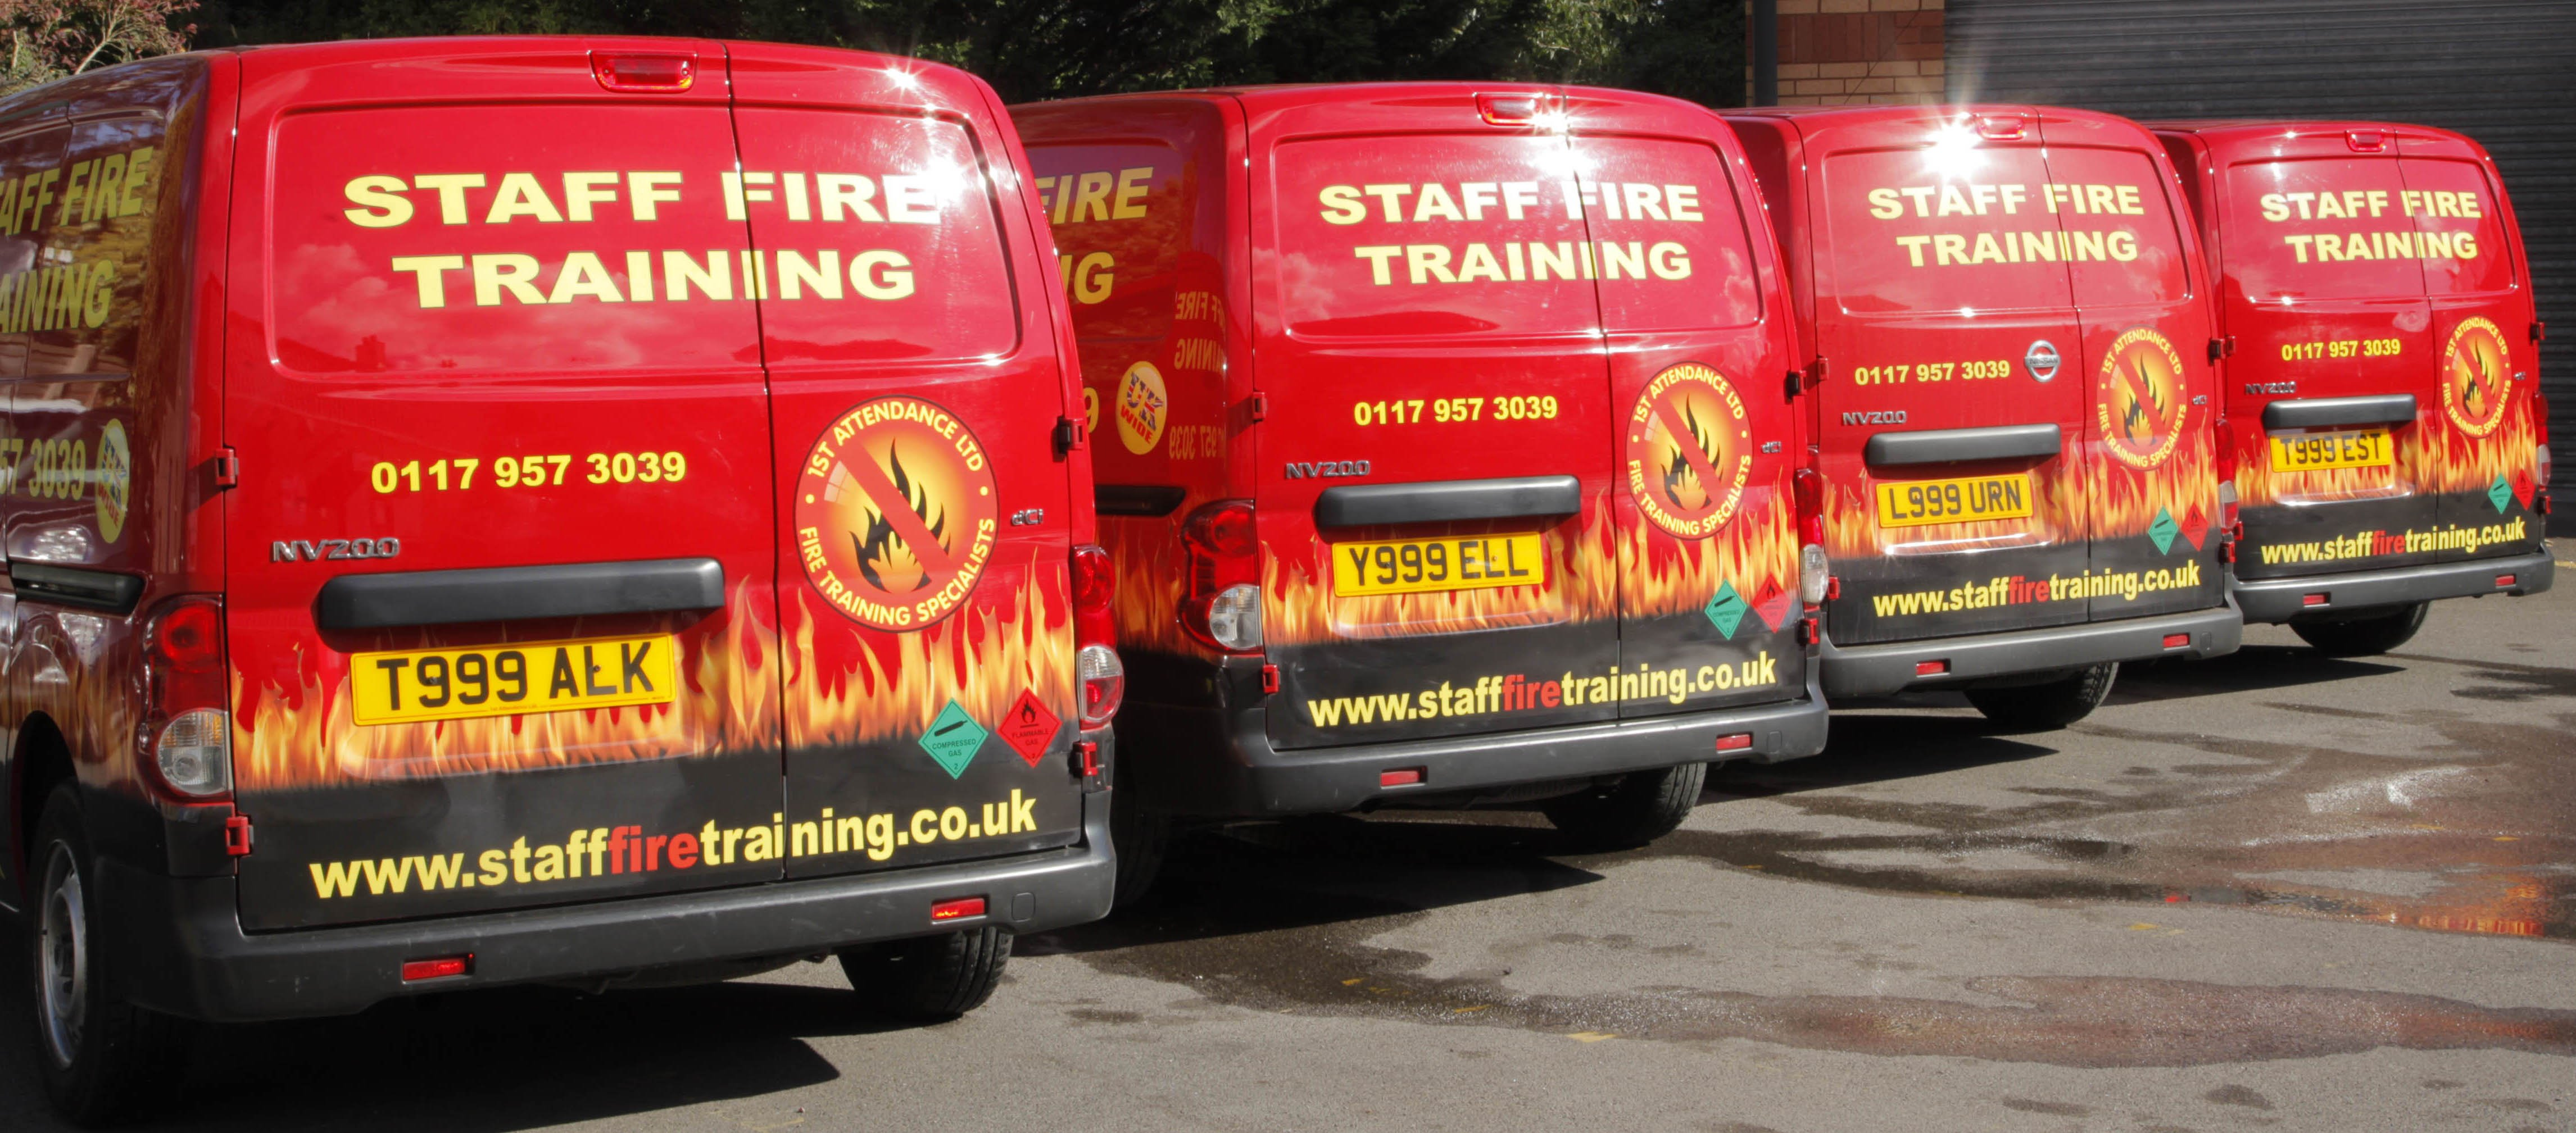 Fire Safety Training Vehicles